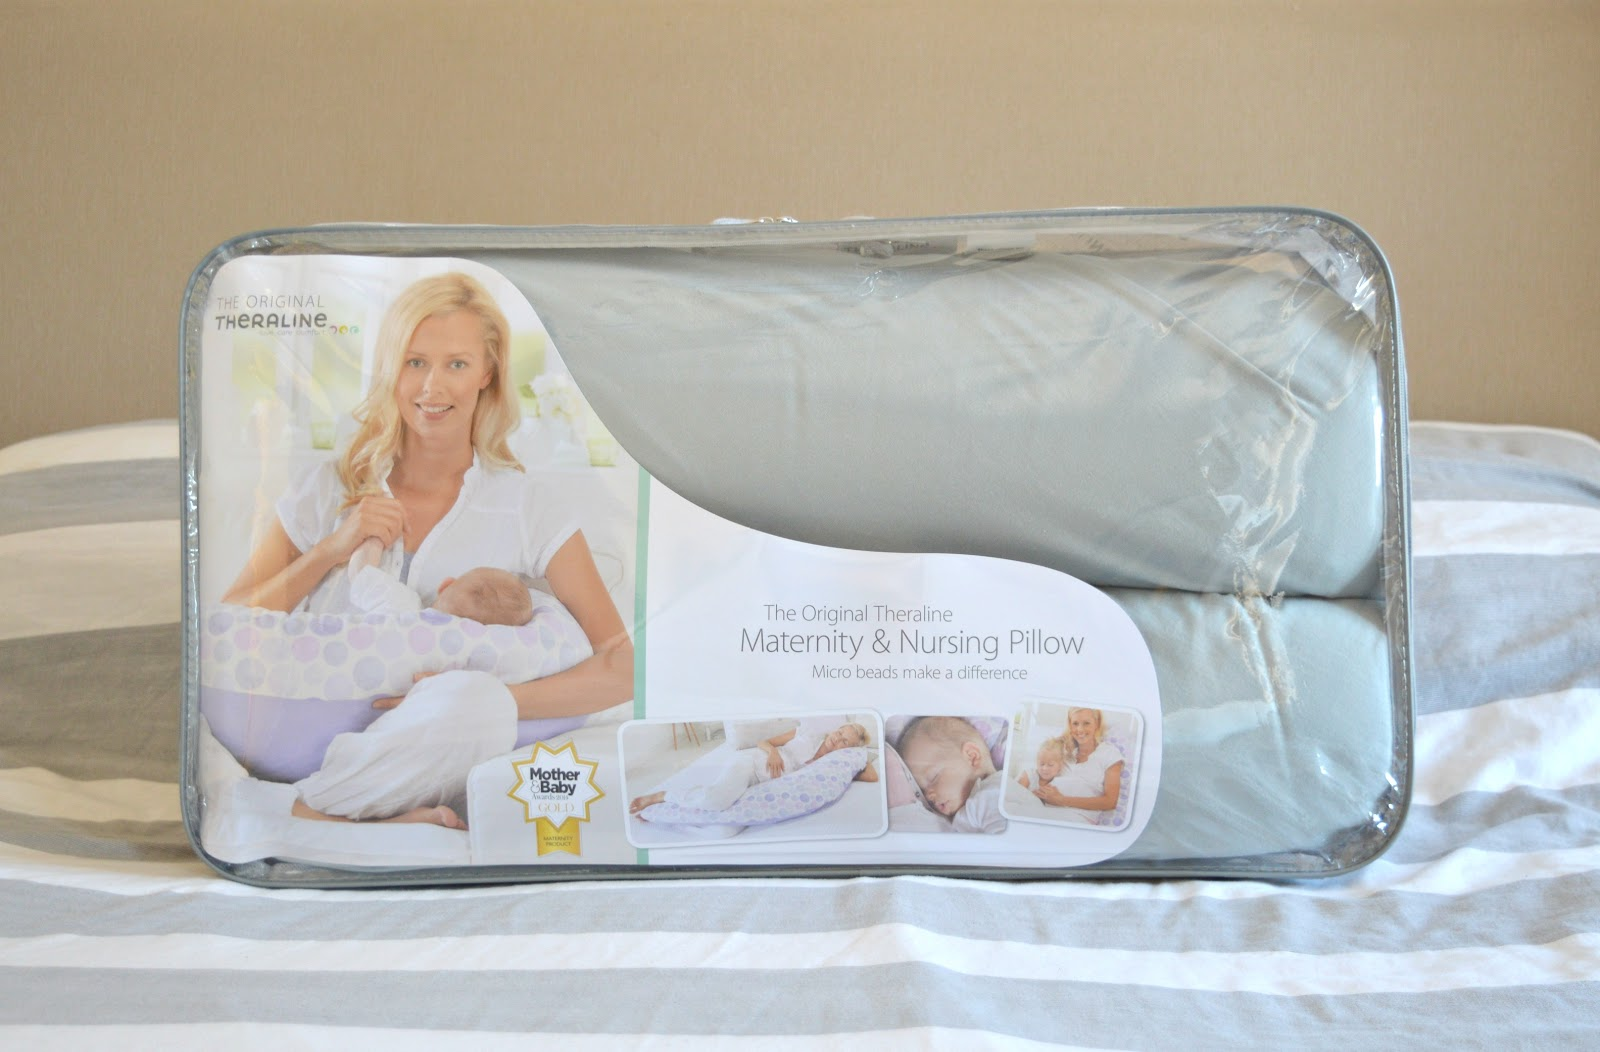 Theraline Maternity & Nursing Pillow Review